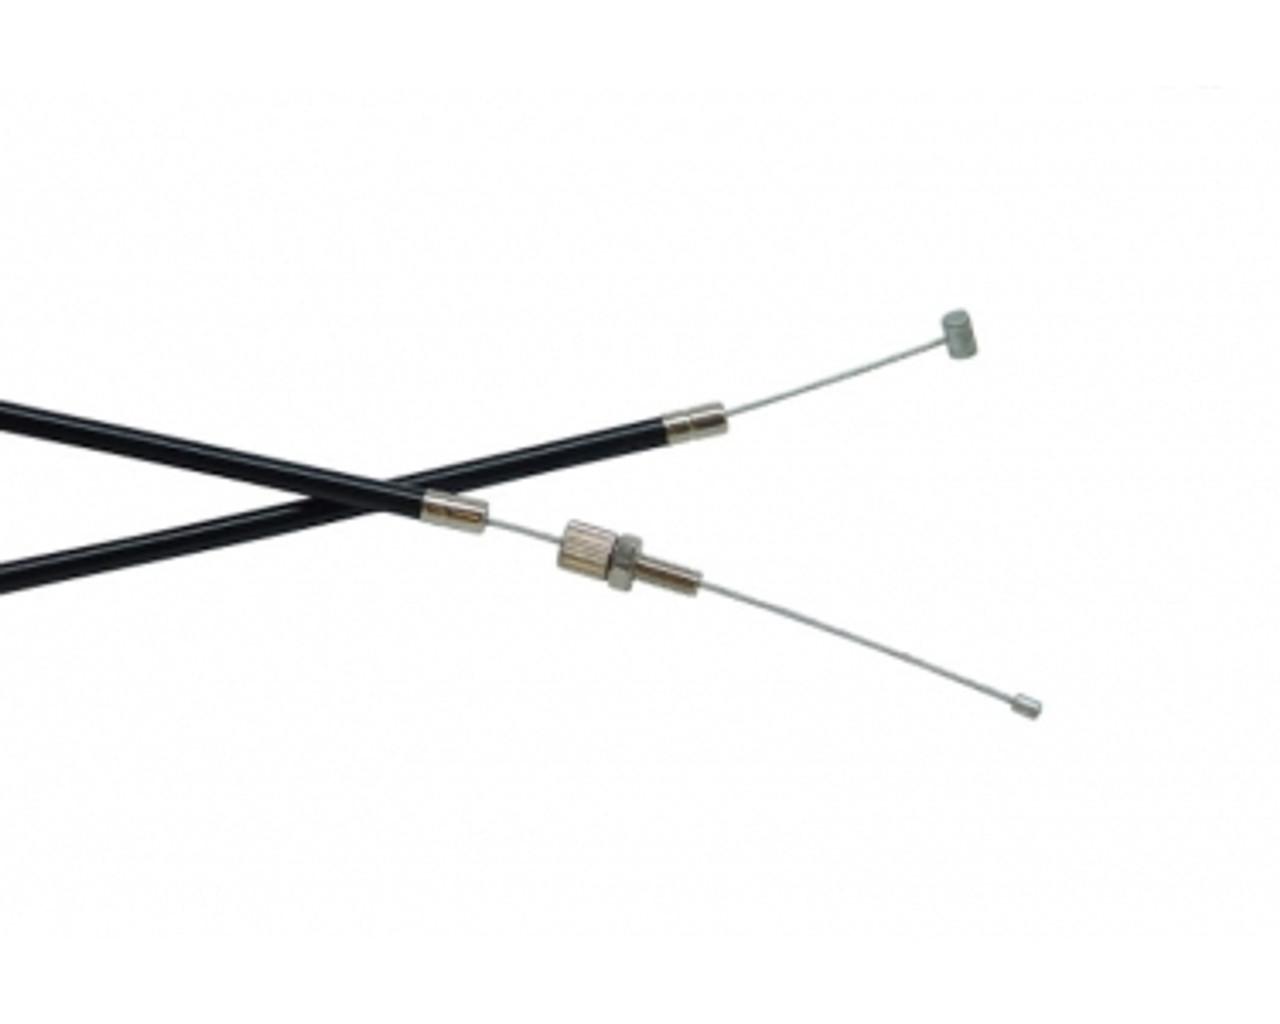 Puch Moped Throttle Cable - Teflon Coated